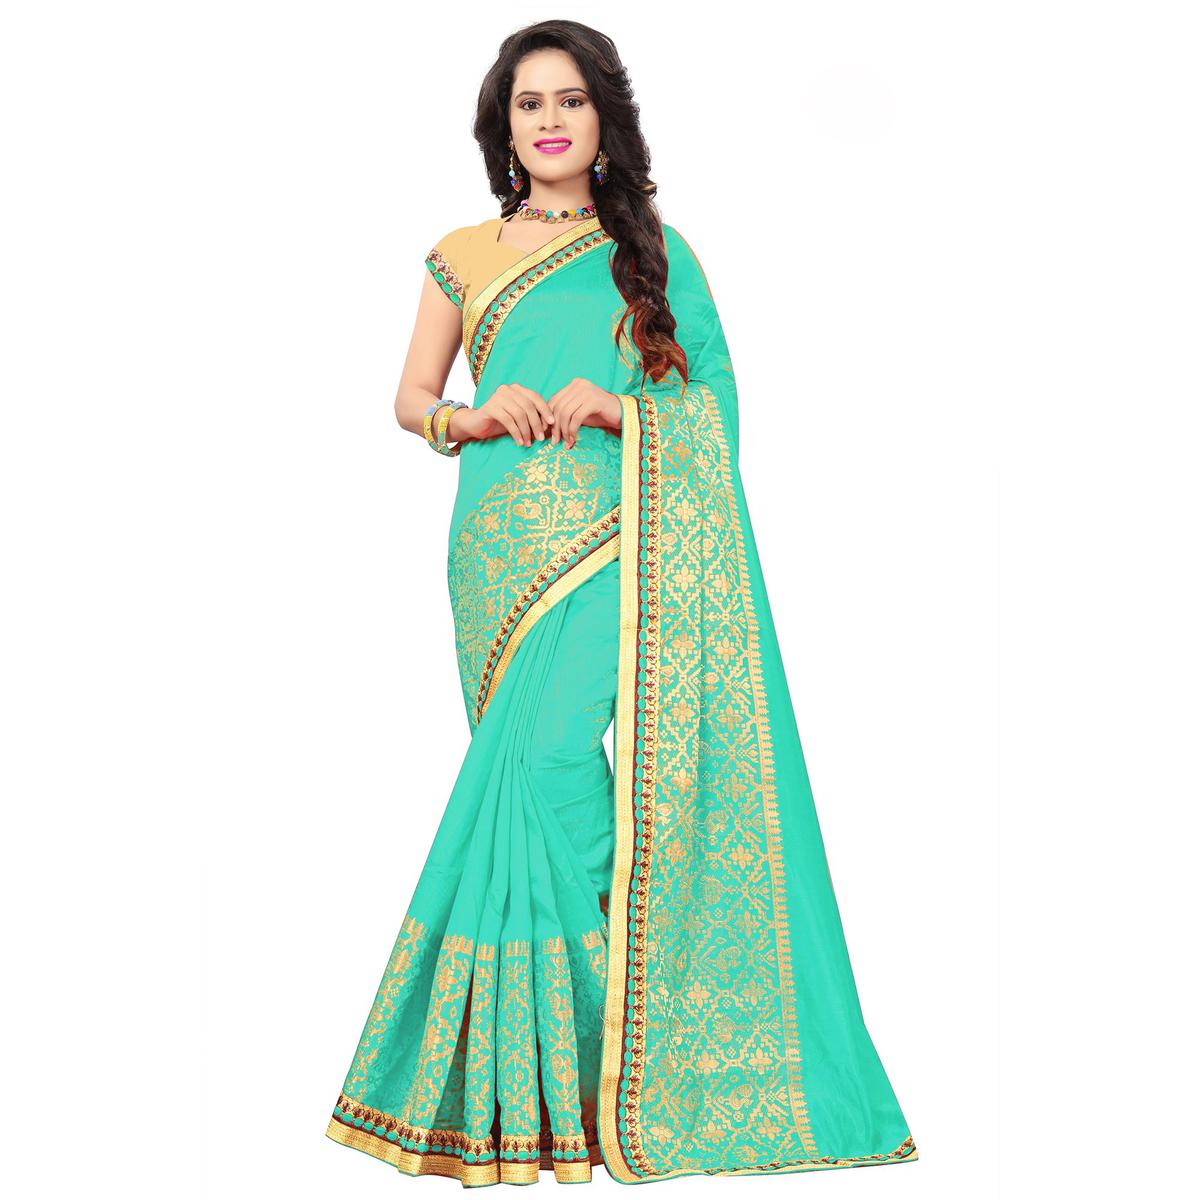 Classy Turquoise Green Colored Festive Wear Woven Silk Saree